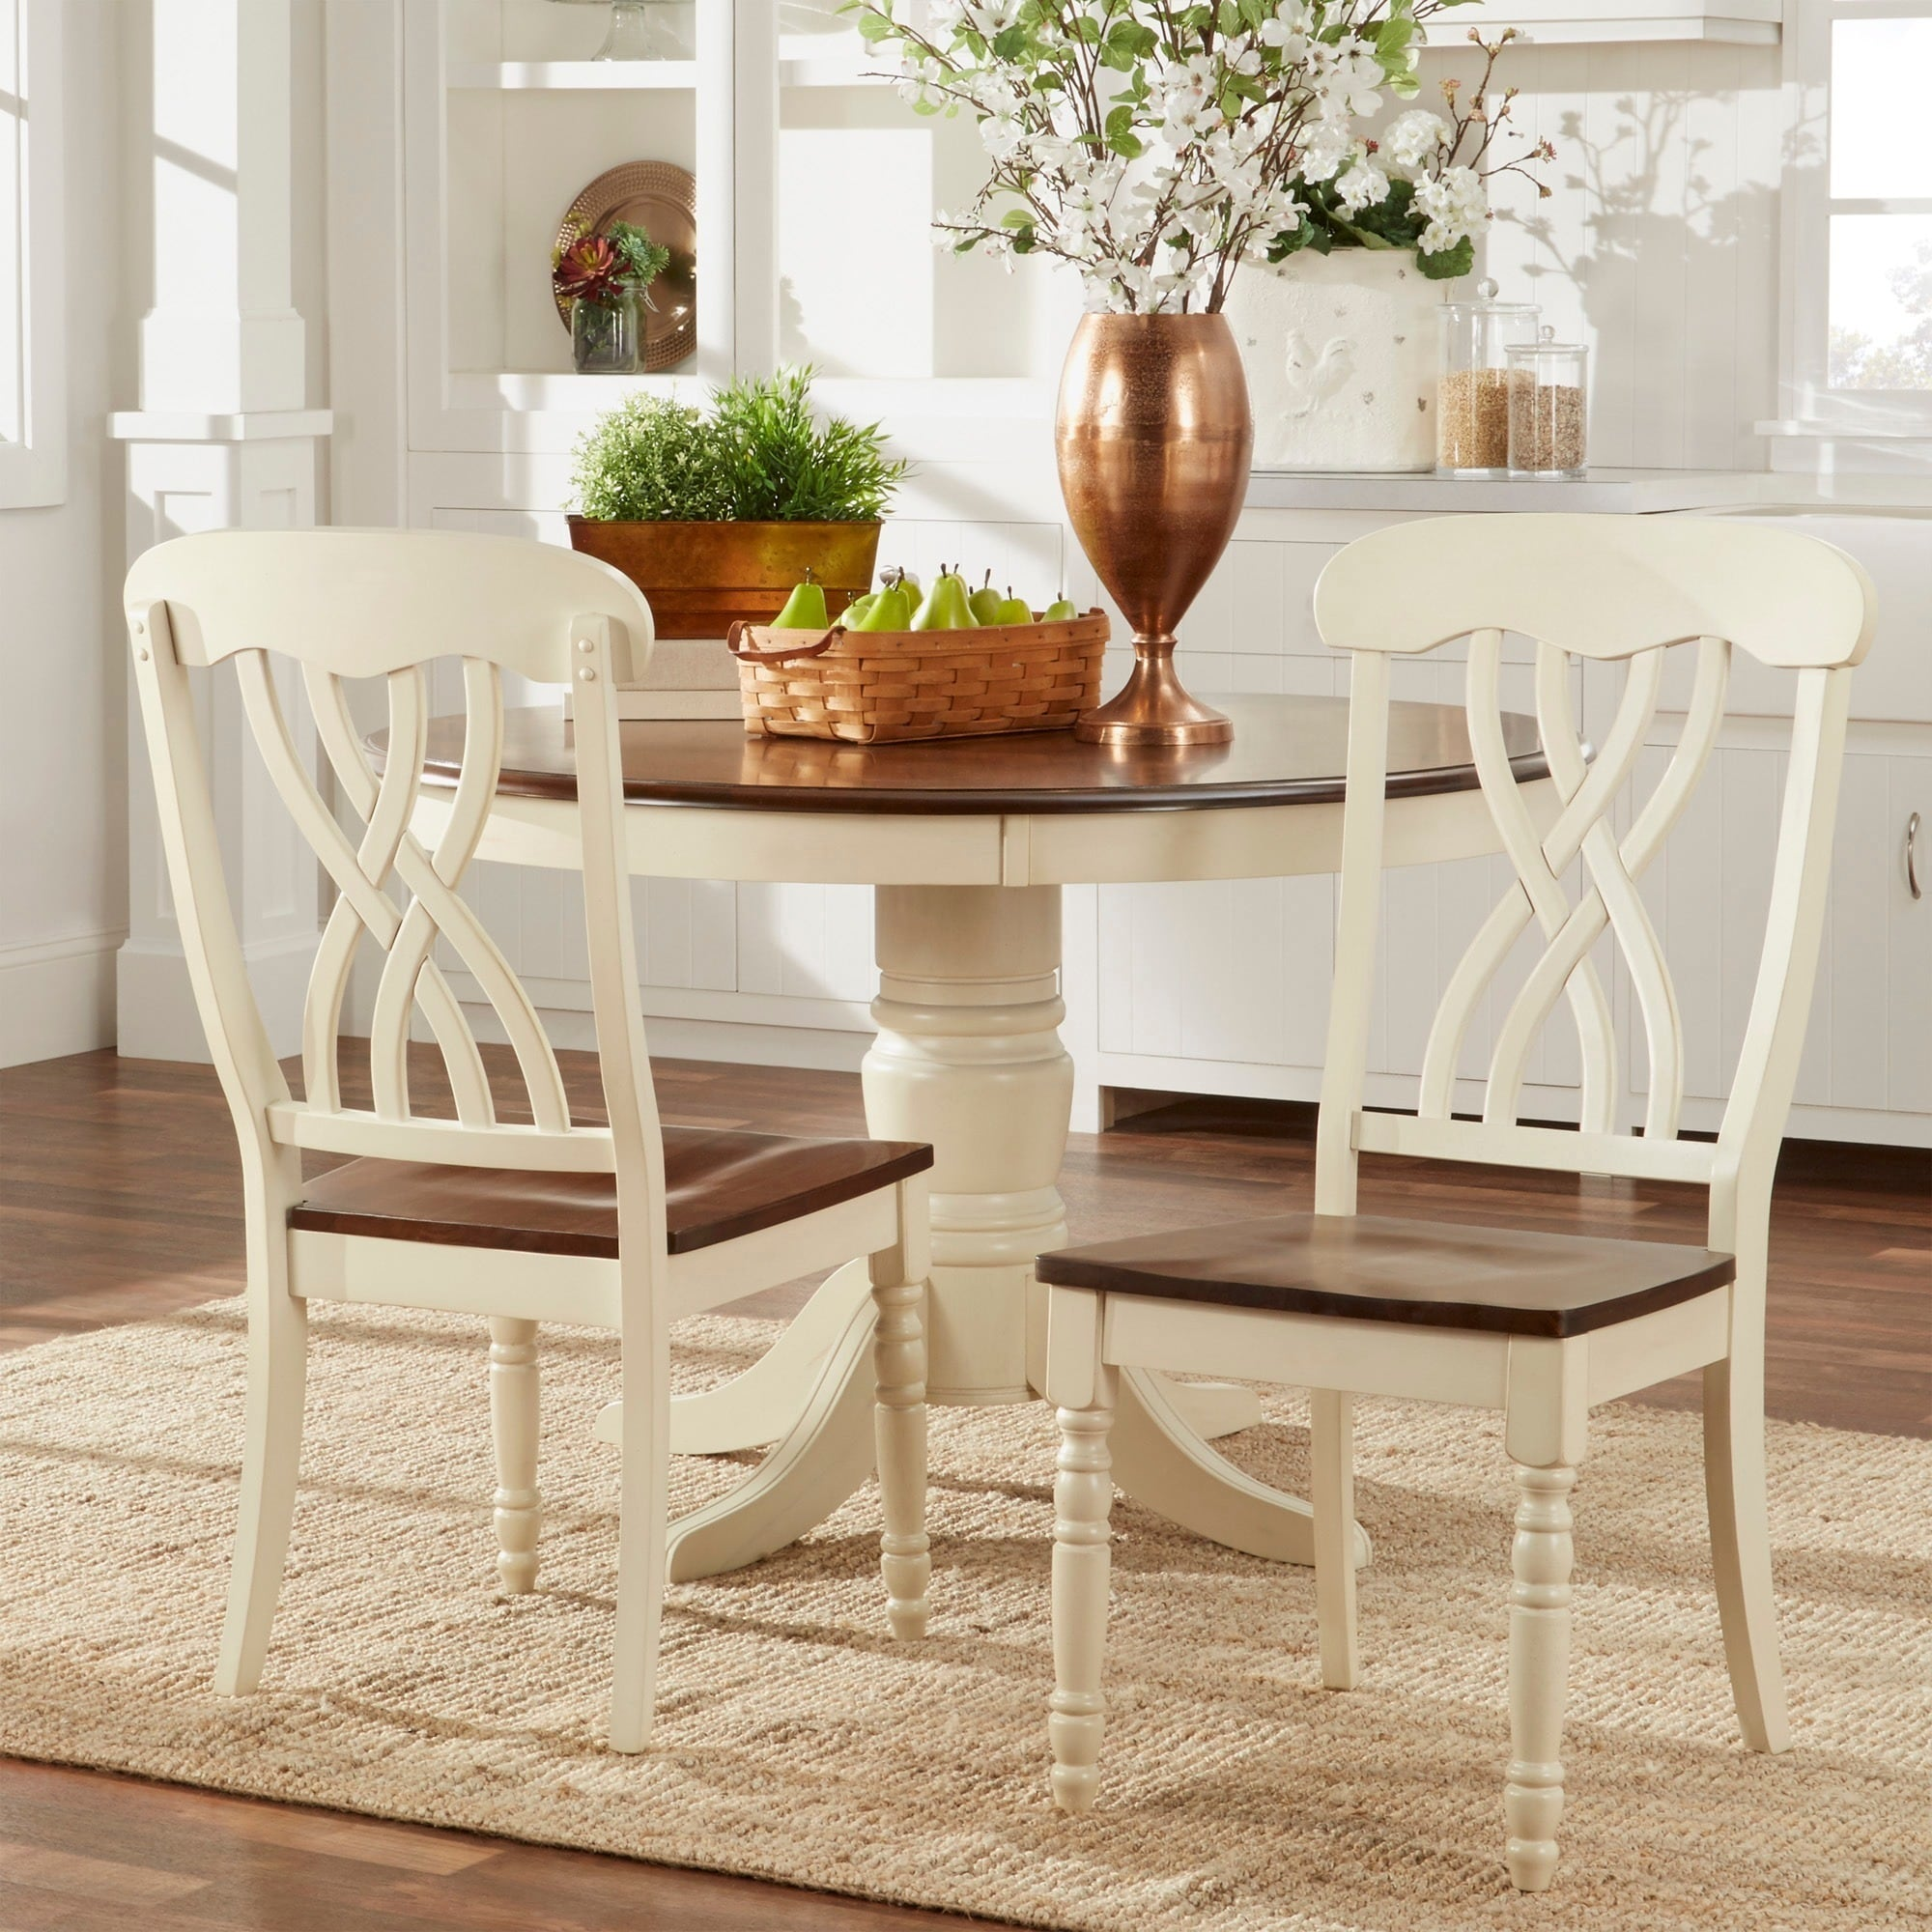 Country Style Two Tone Dining Chairs